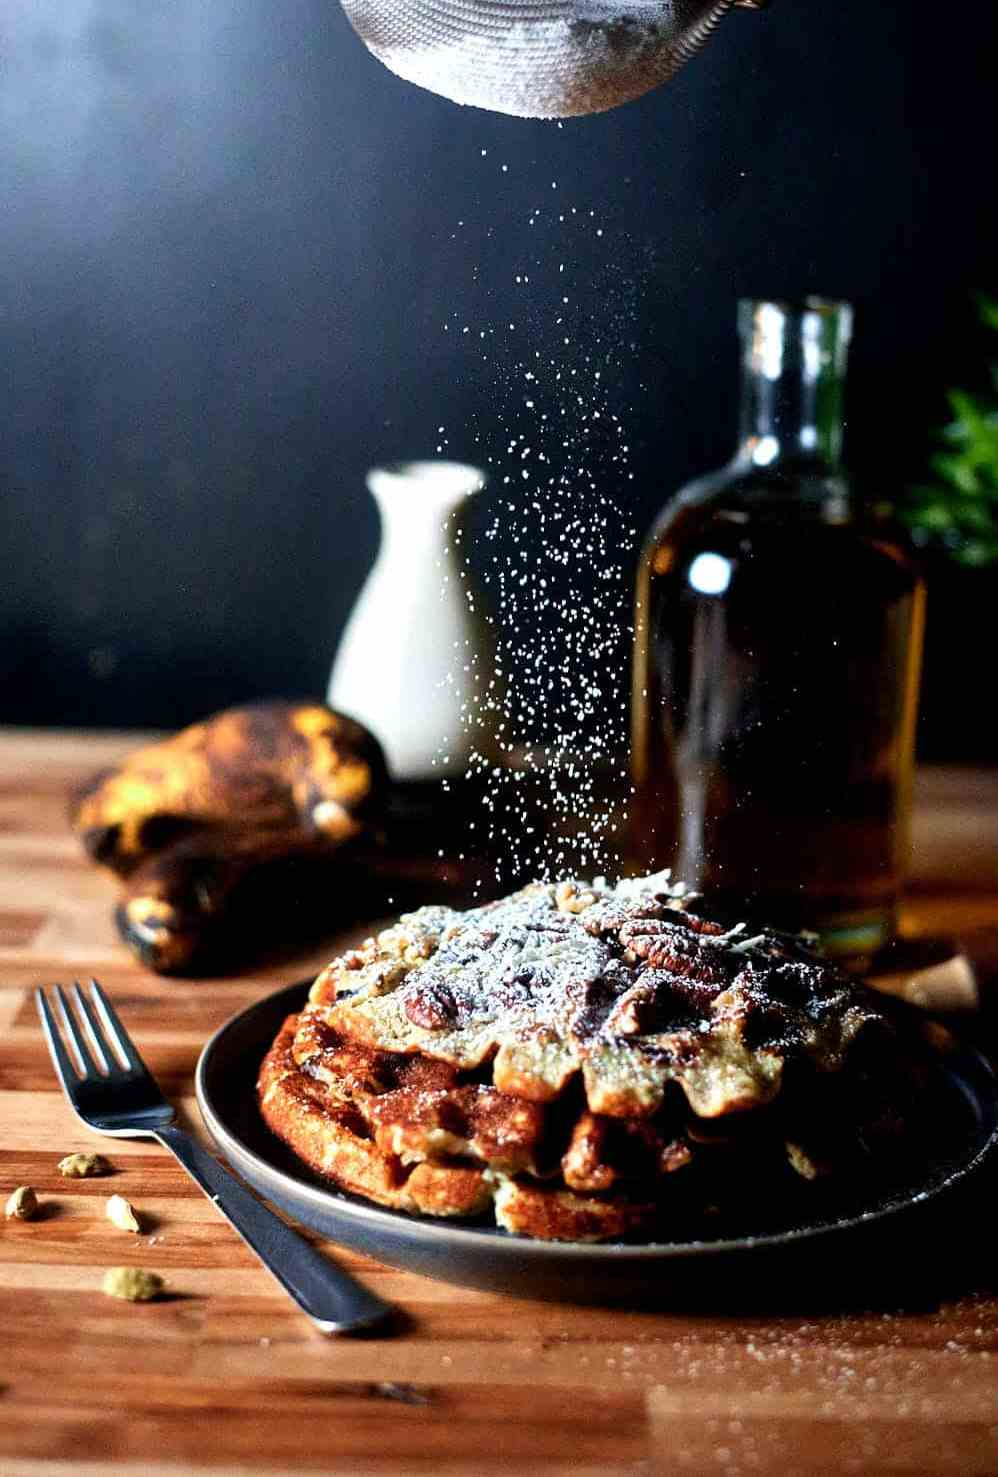 Banana Bread Waffles with sprinkled powdered sugar